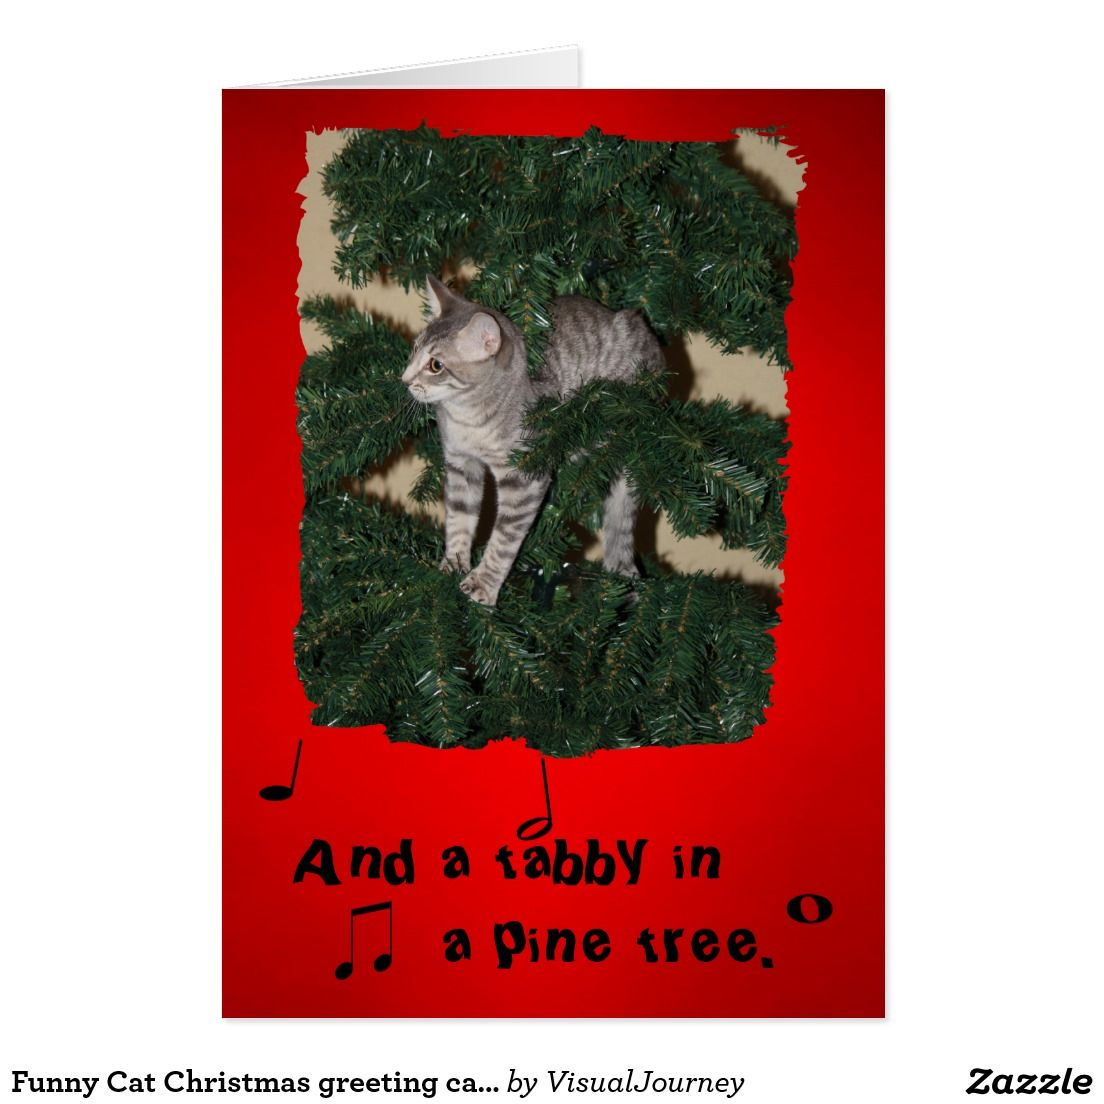 Funny cat christmas greeting card stuff sold on zazzle pinterest funny cat christmas greeting card m4hsunfo